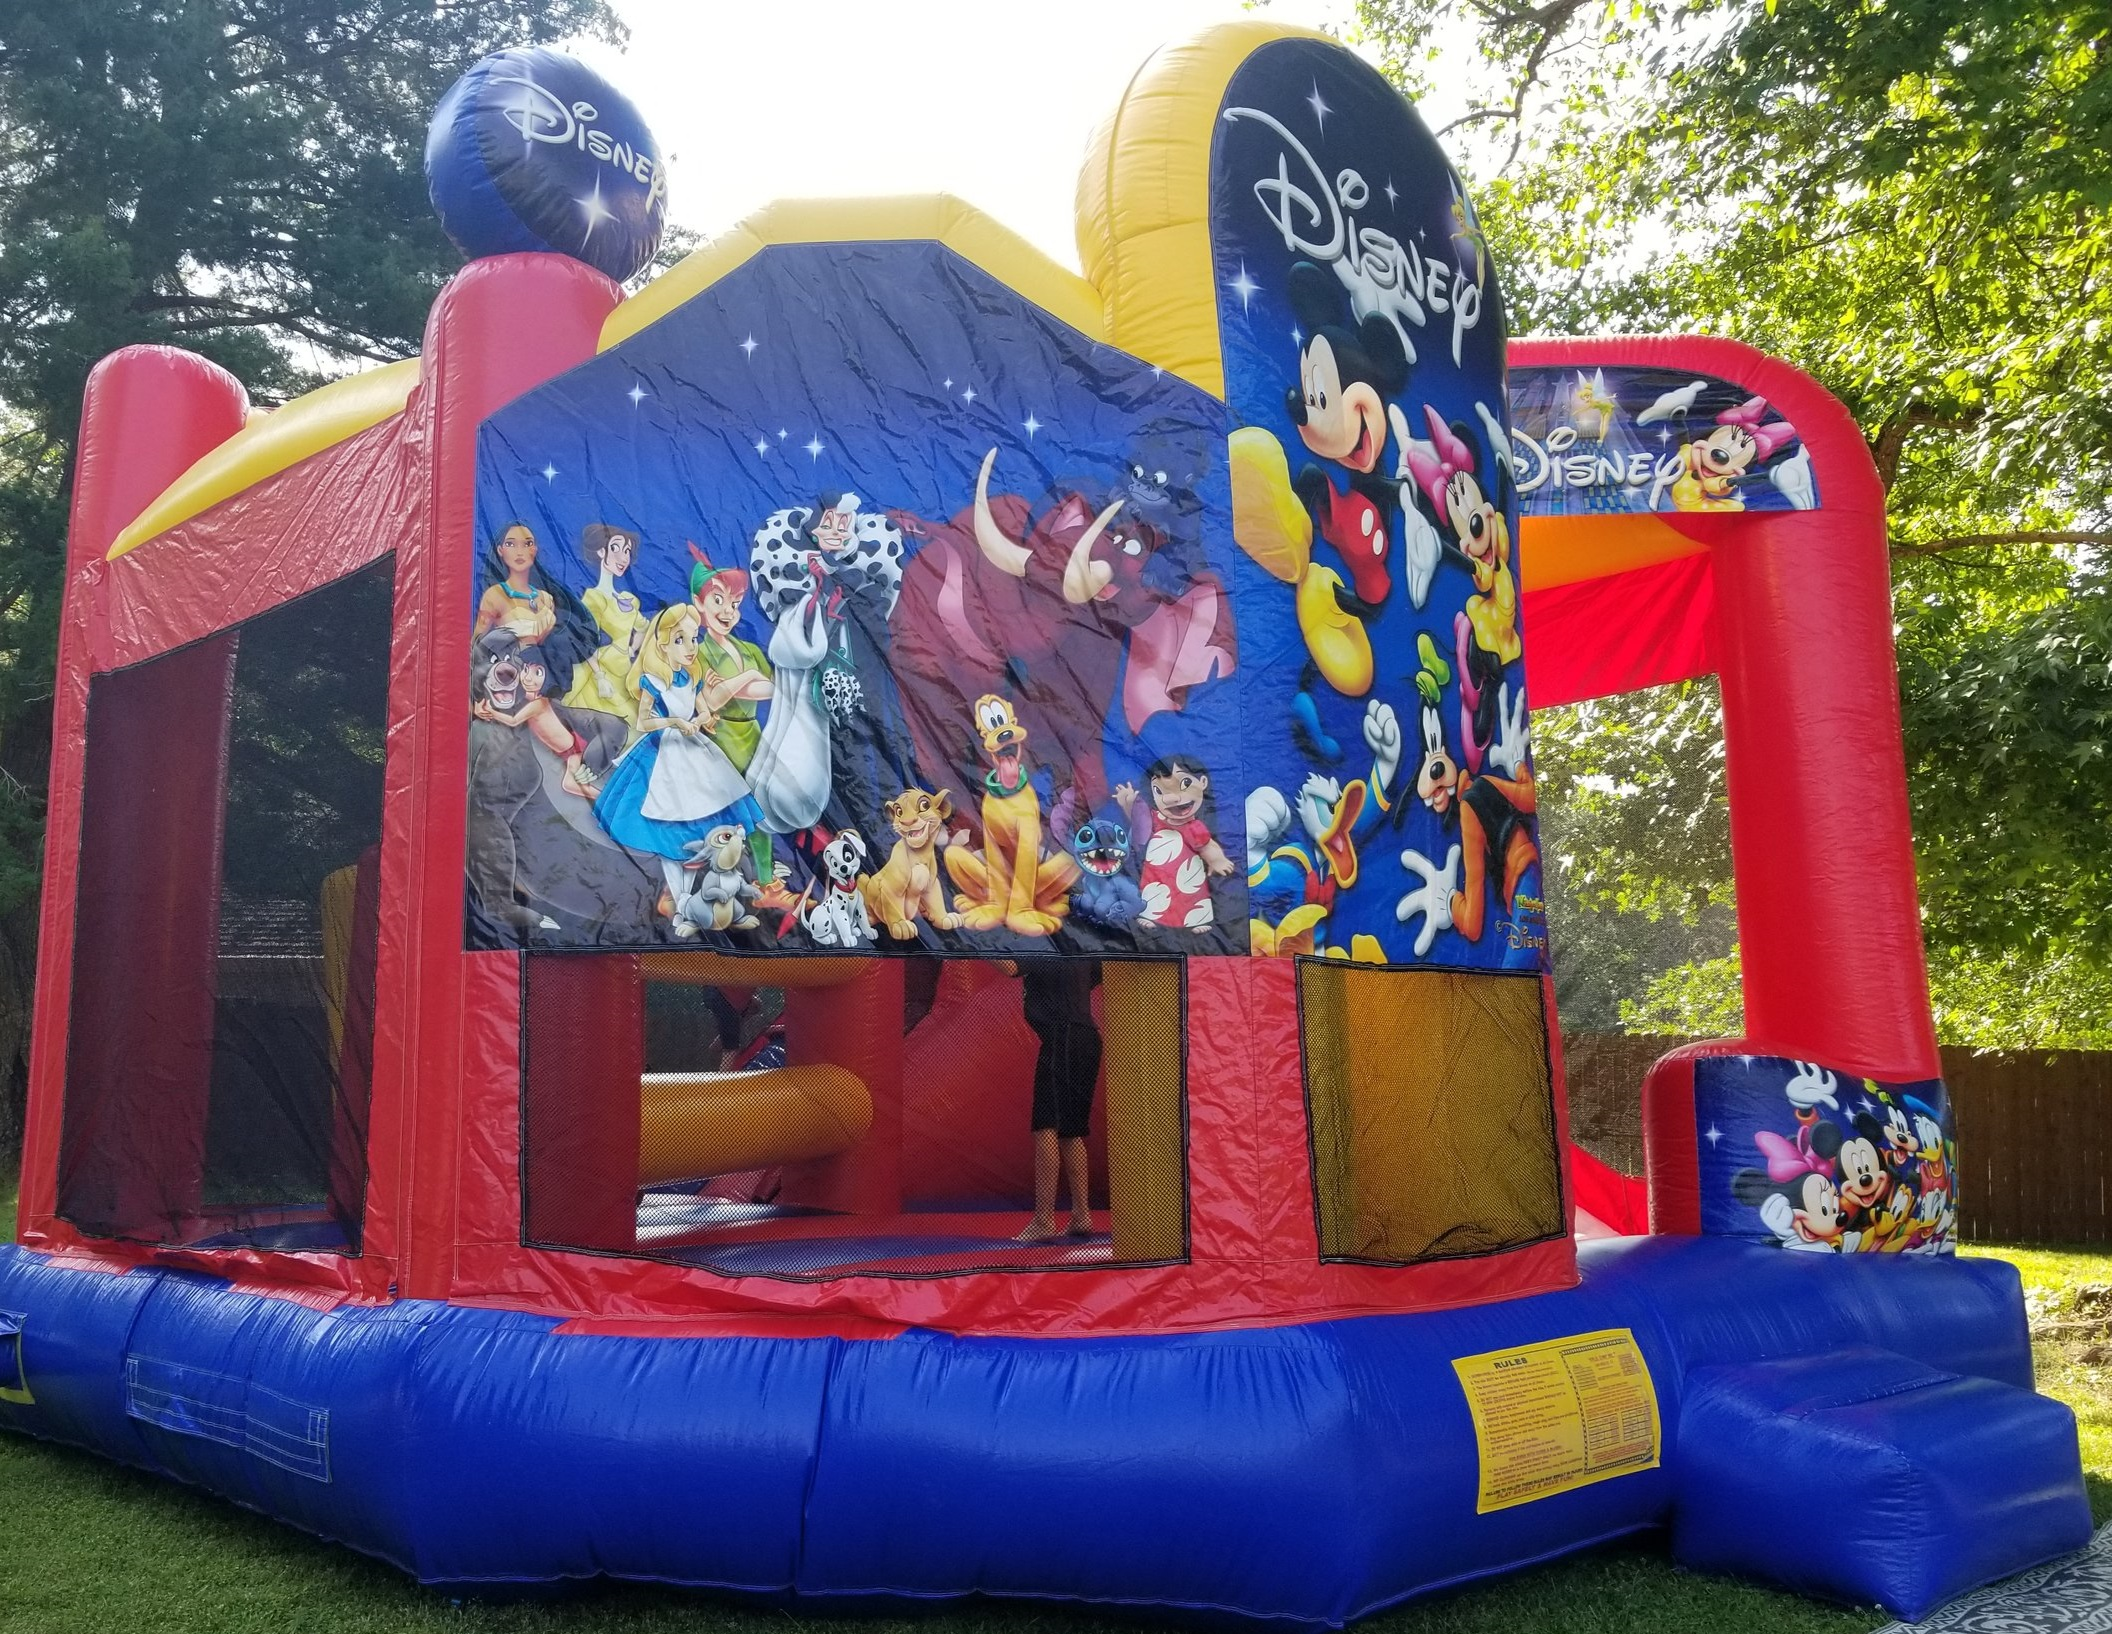 we will have bouncy houses, slides, & so much more! -